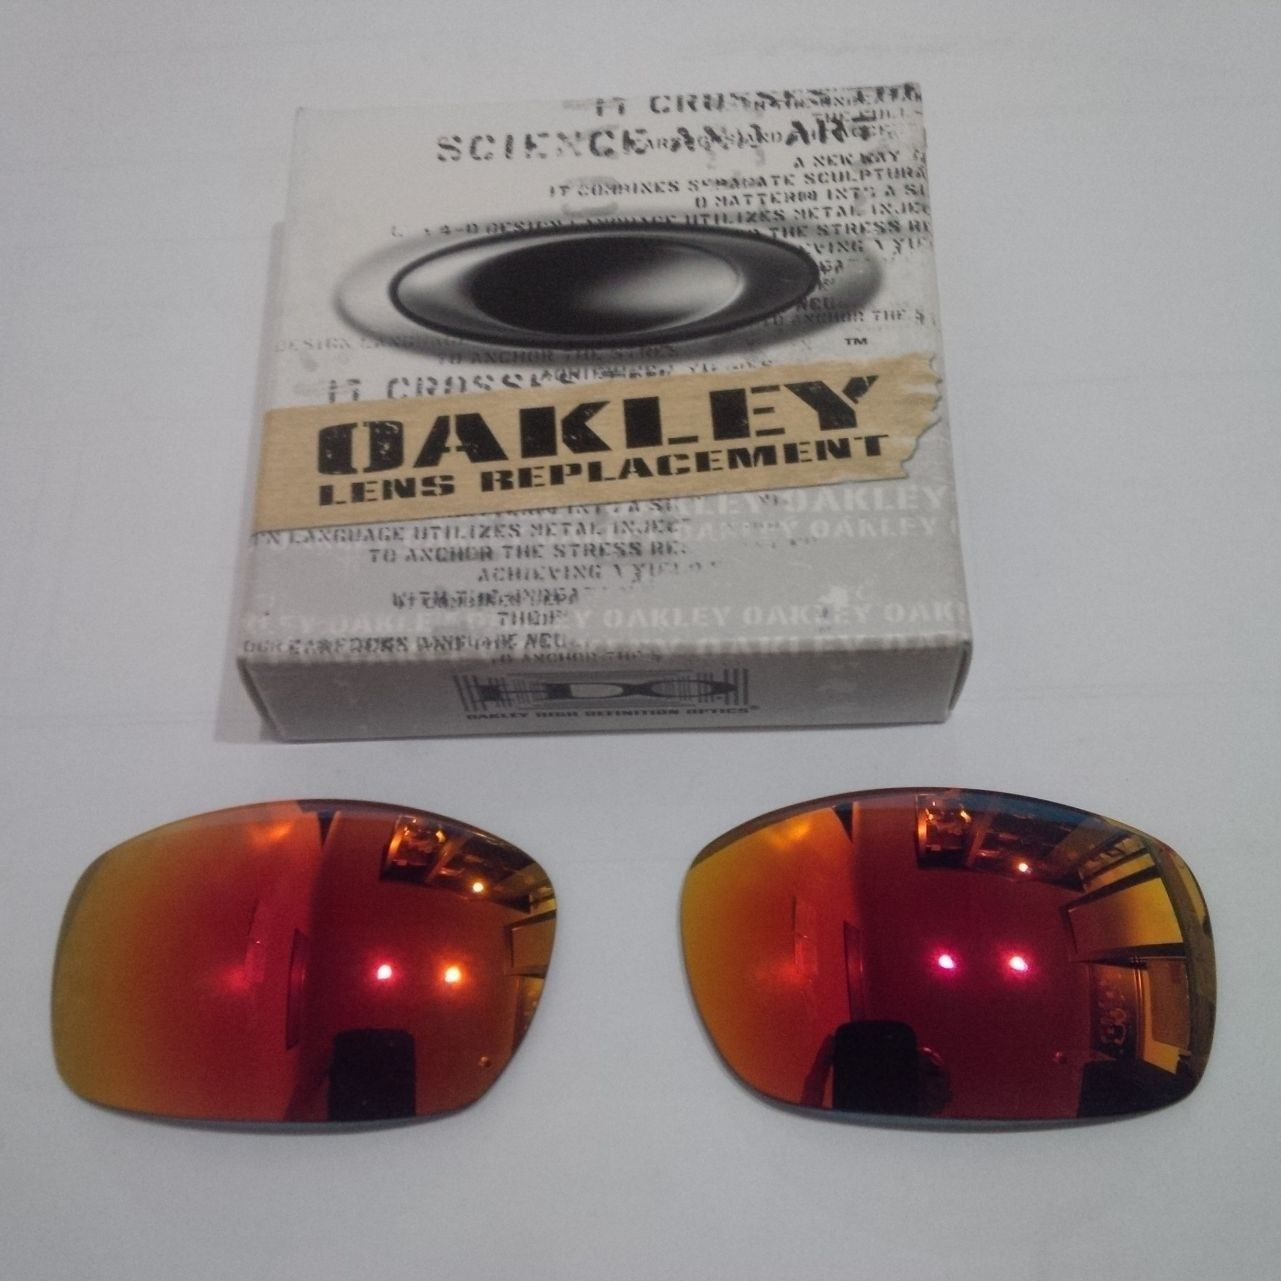 Custom cut replacement lens oakley donor for xmetals - IMG-20150709-WA0006.jpg